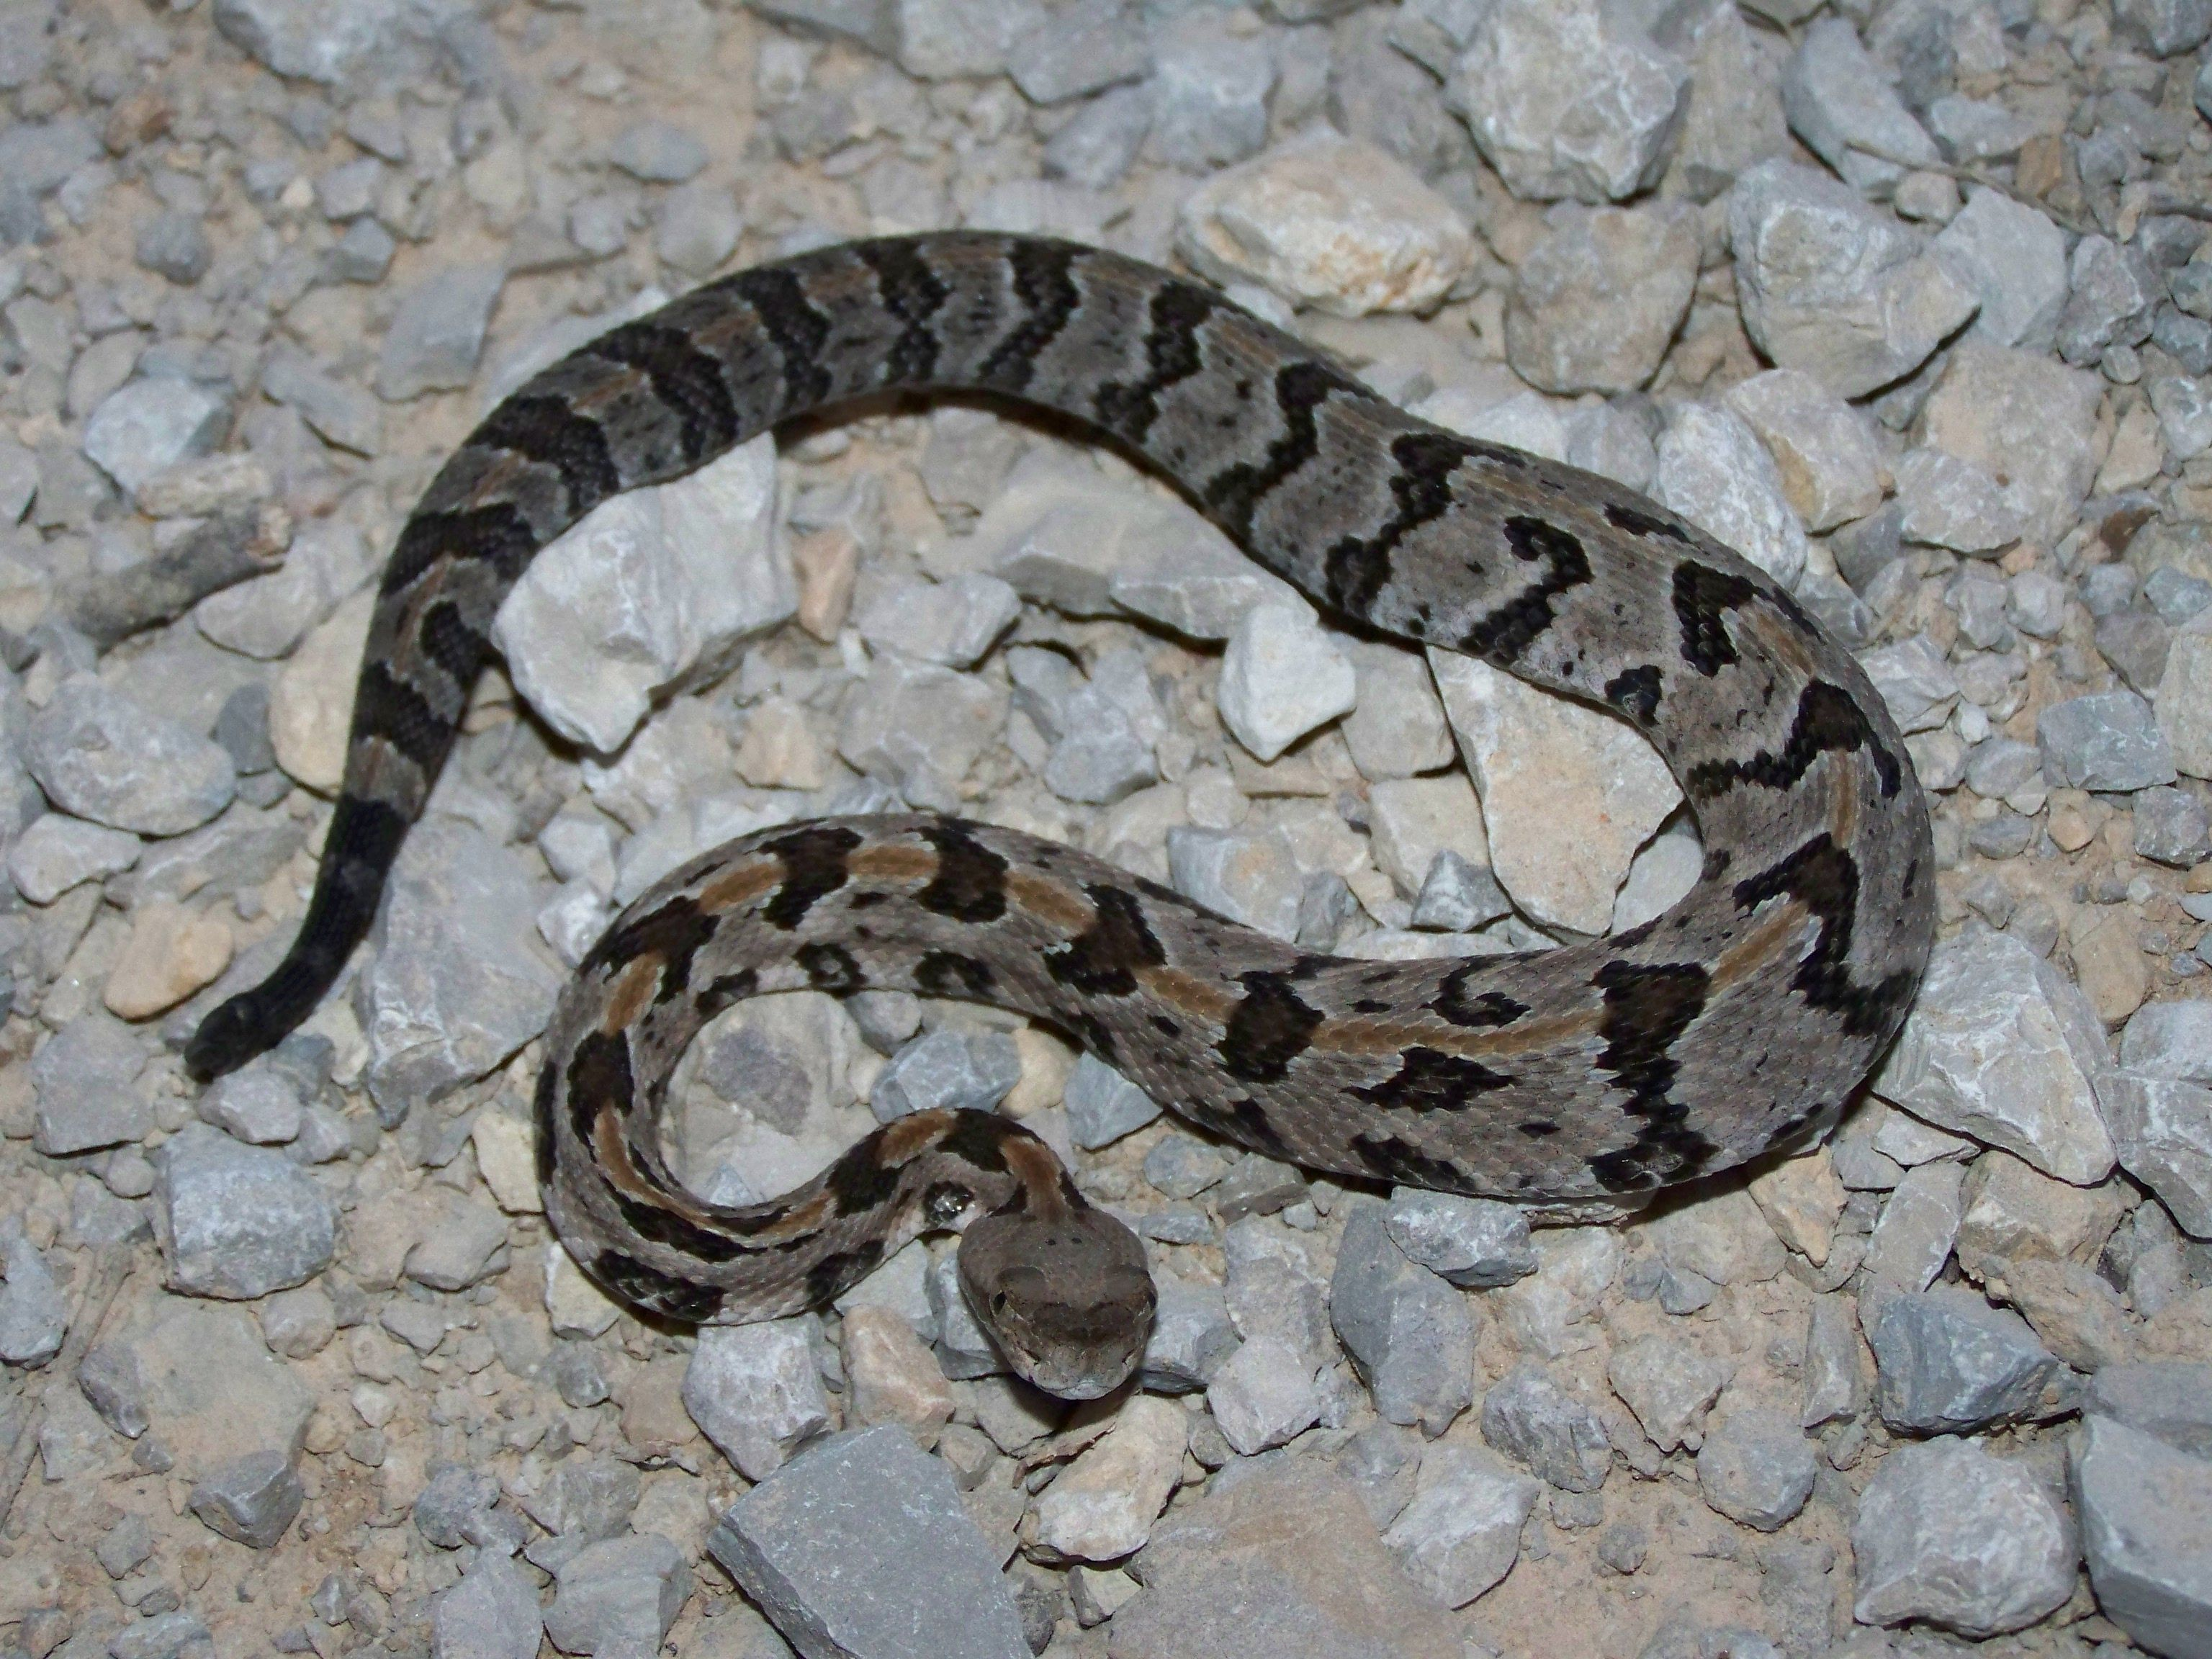 6 Fact About Rattlesnake And Their Babies Rattlesnake Poisonous Snakes Facts